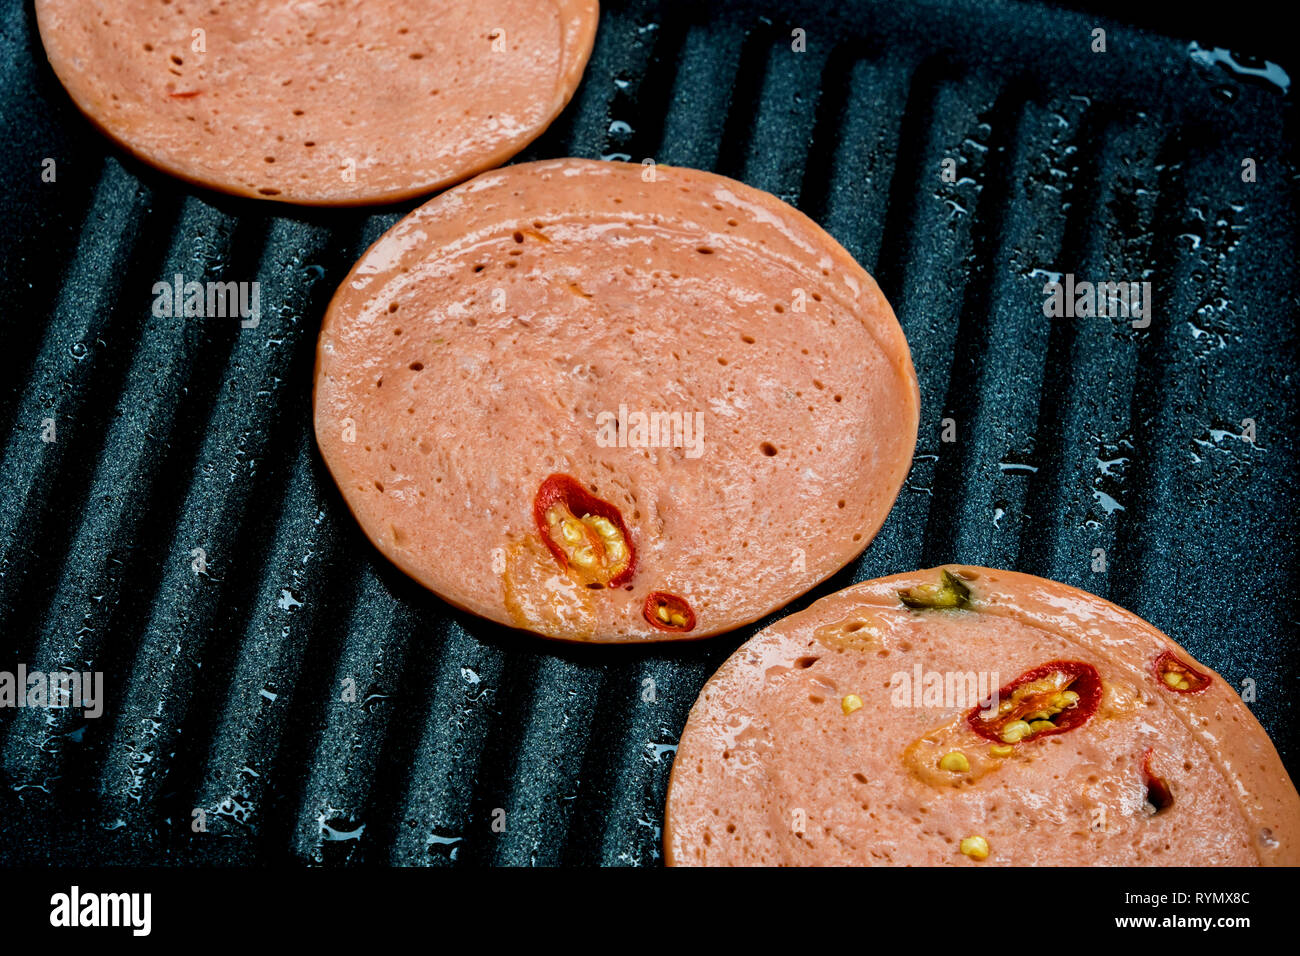 Spices Bologna fried in cooking pan - Stock Image